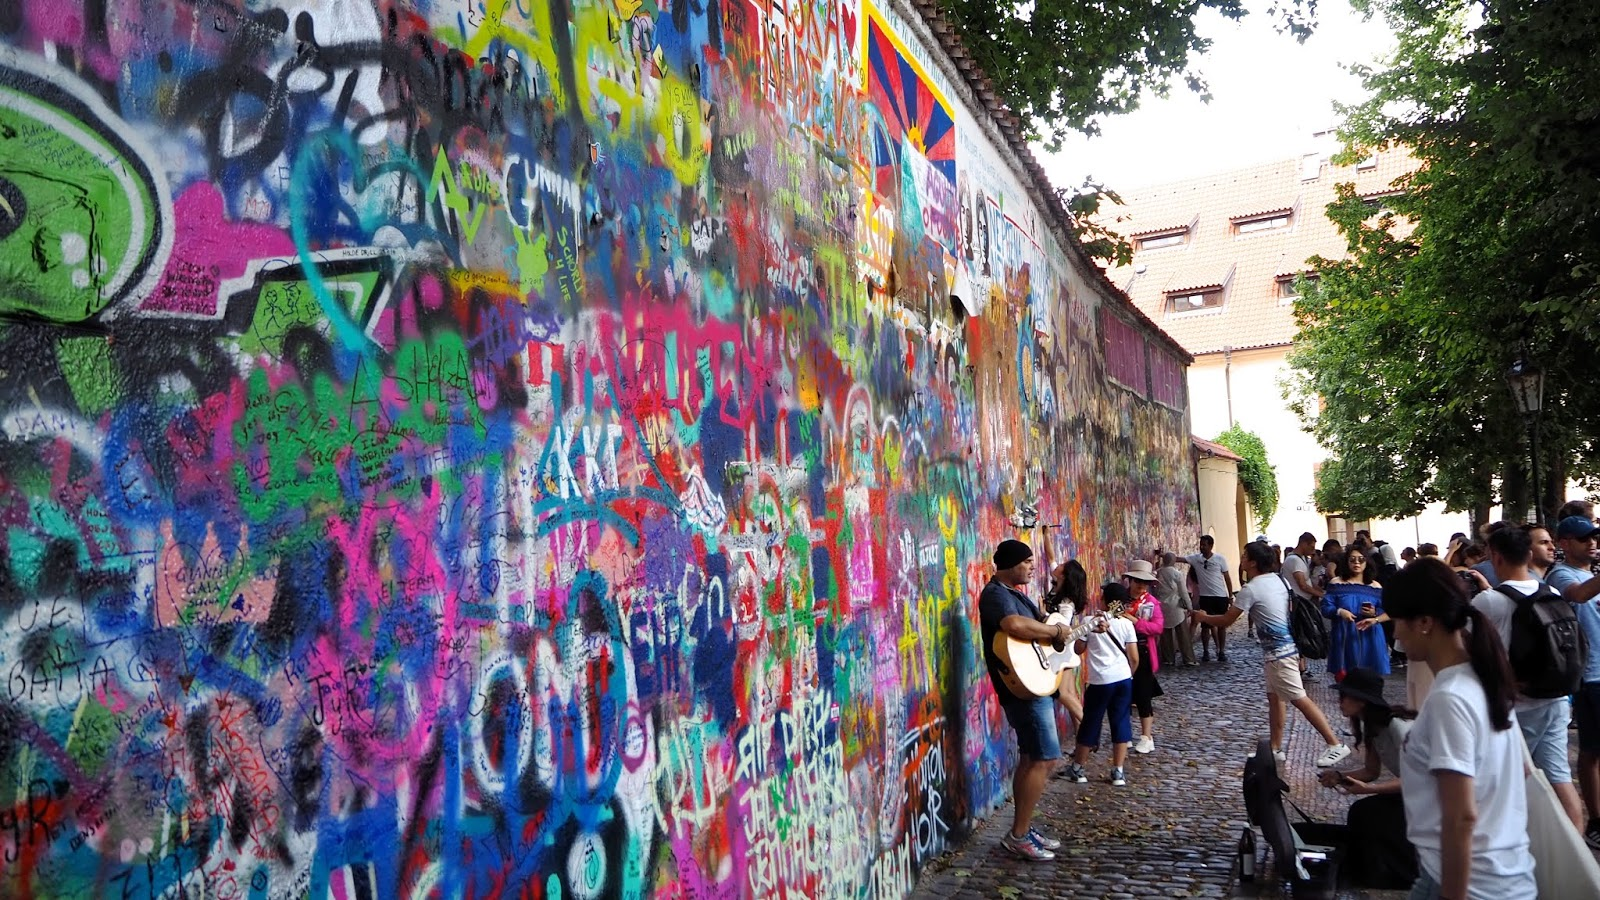 Crowds and musician in front of graphiti wall